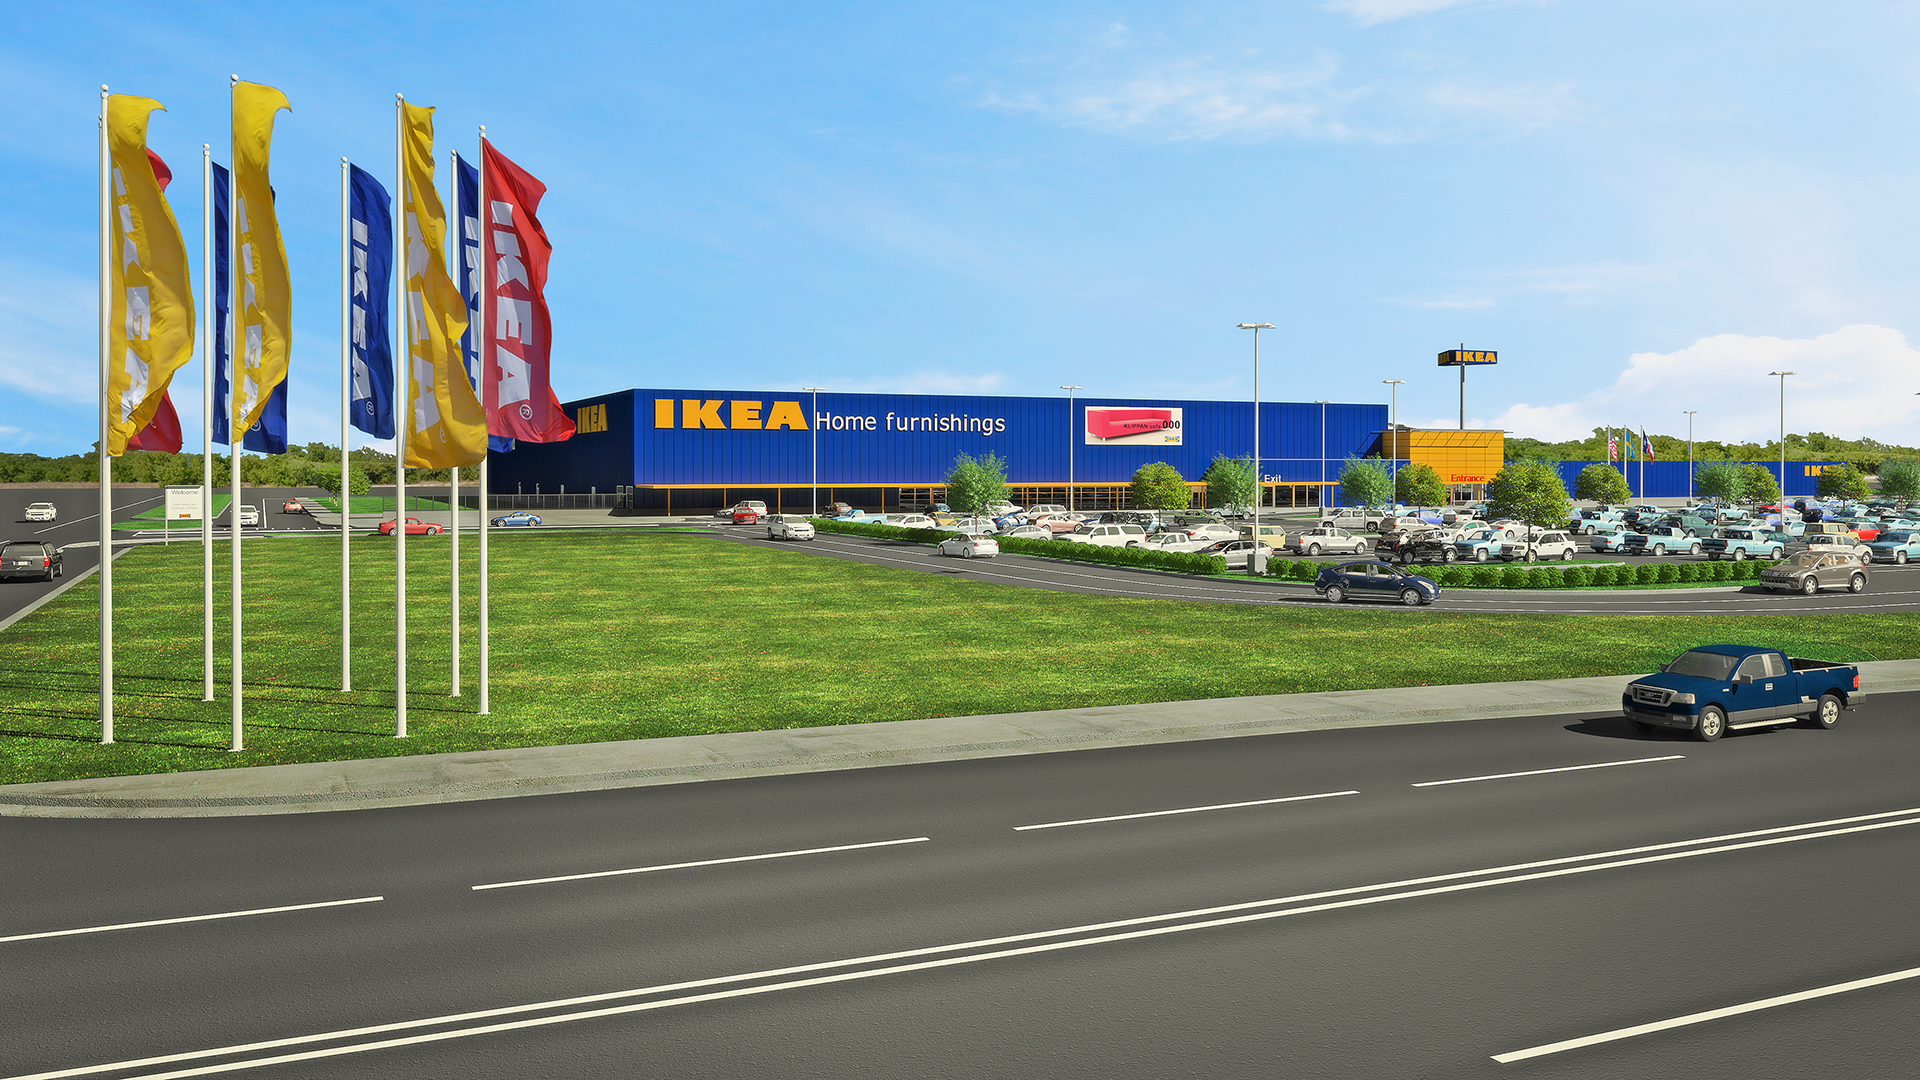 IKEA Proposes Plans for Fort Worth Store to Open Summer 2019 as Third Dallas-Fort Worth-Area IKEA Store and Sixth in State (Graphic: Business Wire)